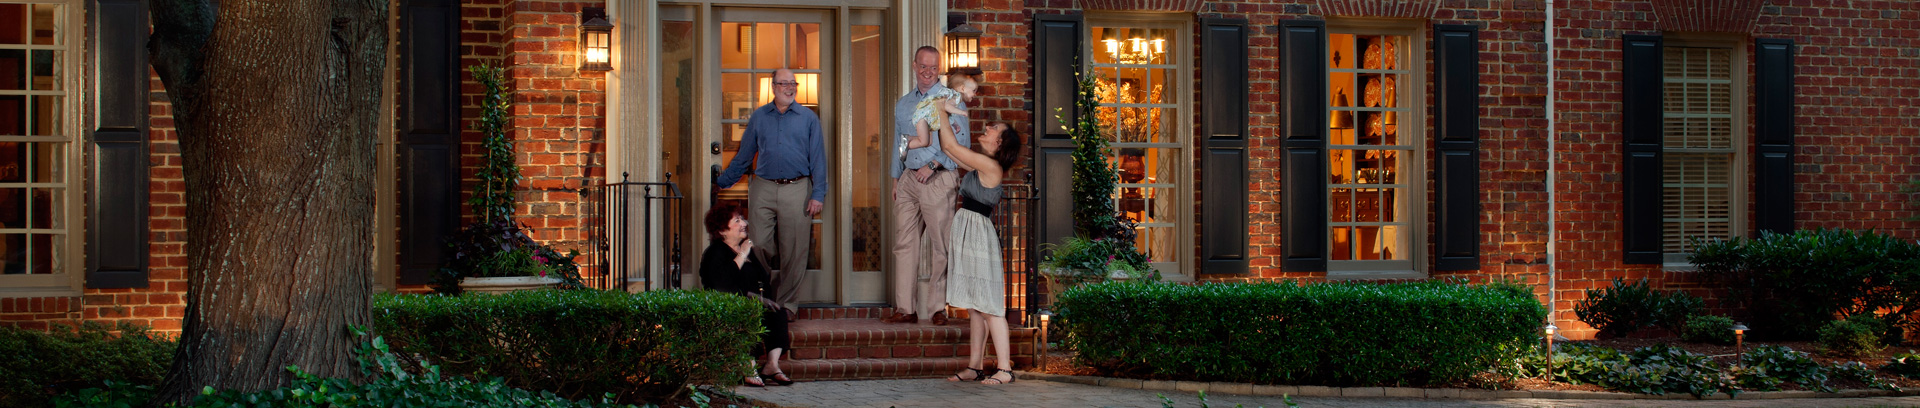 Greater Cincinnati, Ohio area landscape lighting is great for social gatherings with family or friends.